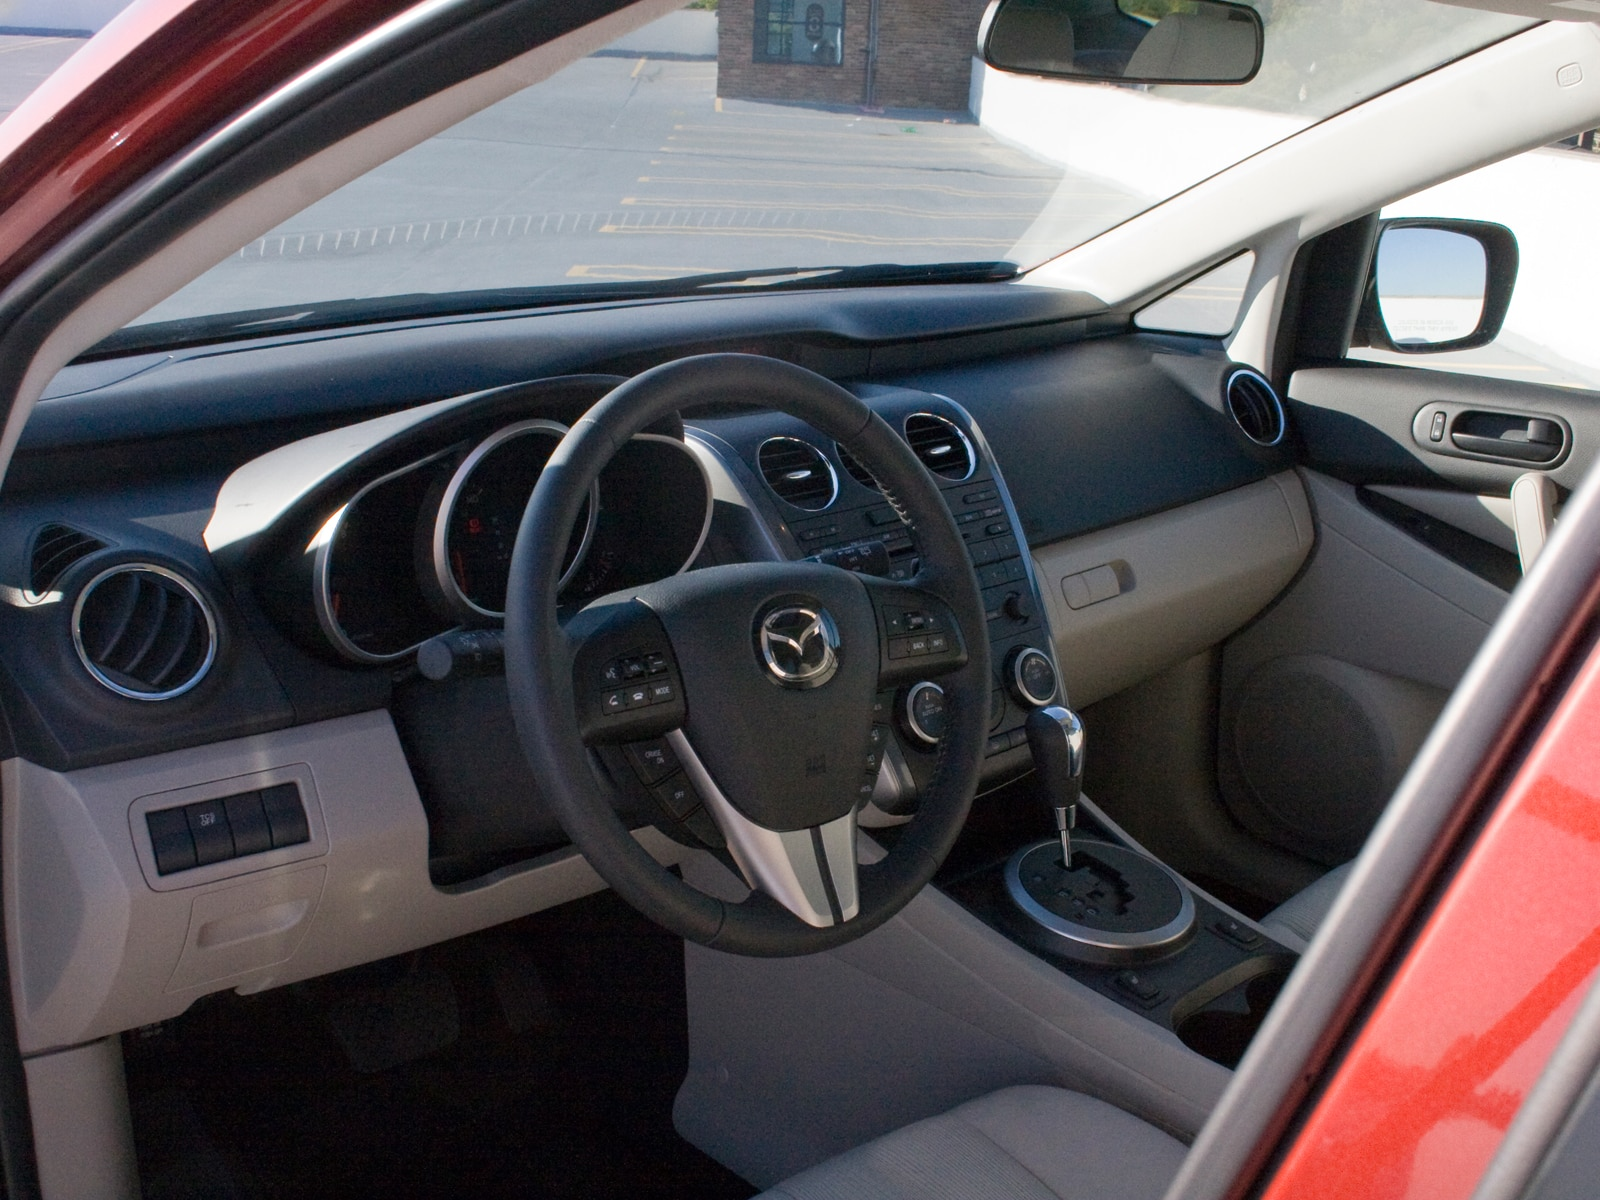 2010 Mazda Cx7 I Sv Mazda Crossover Suv Review